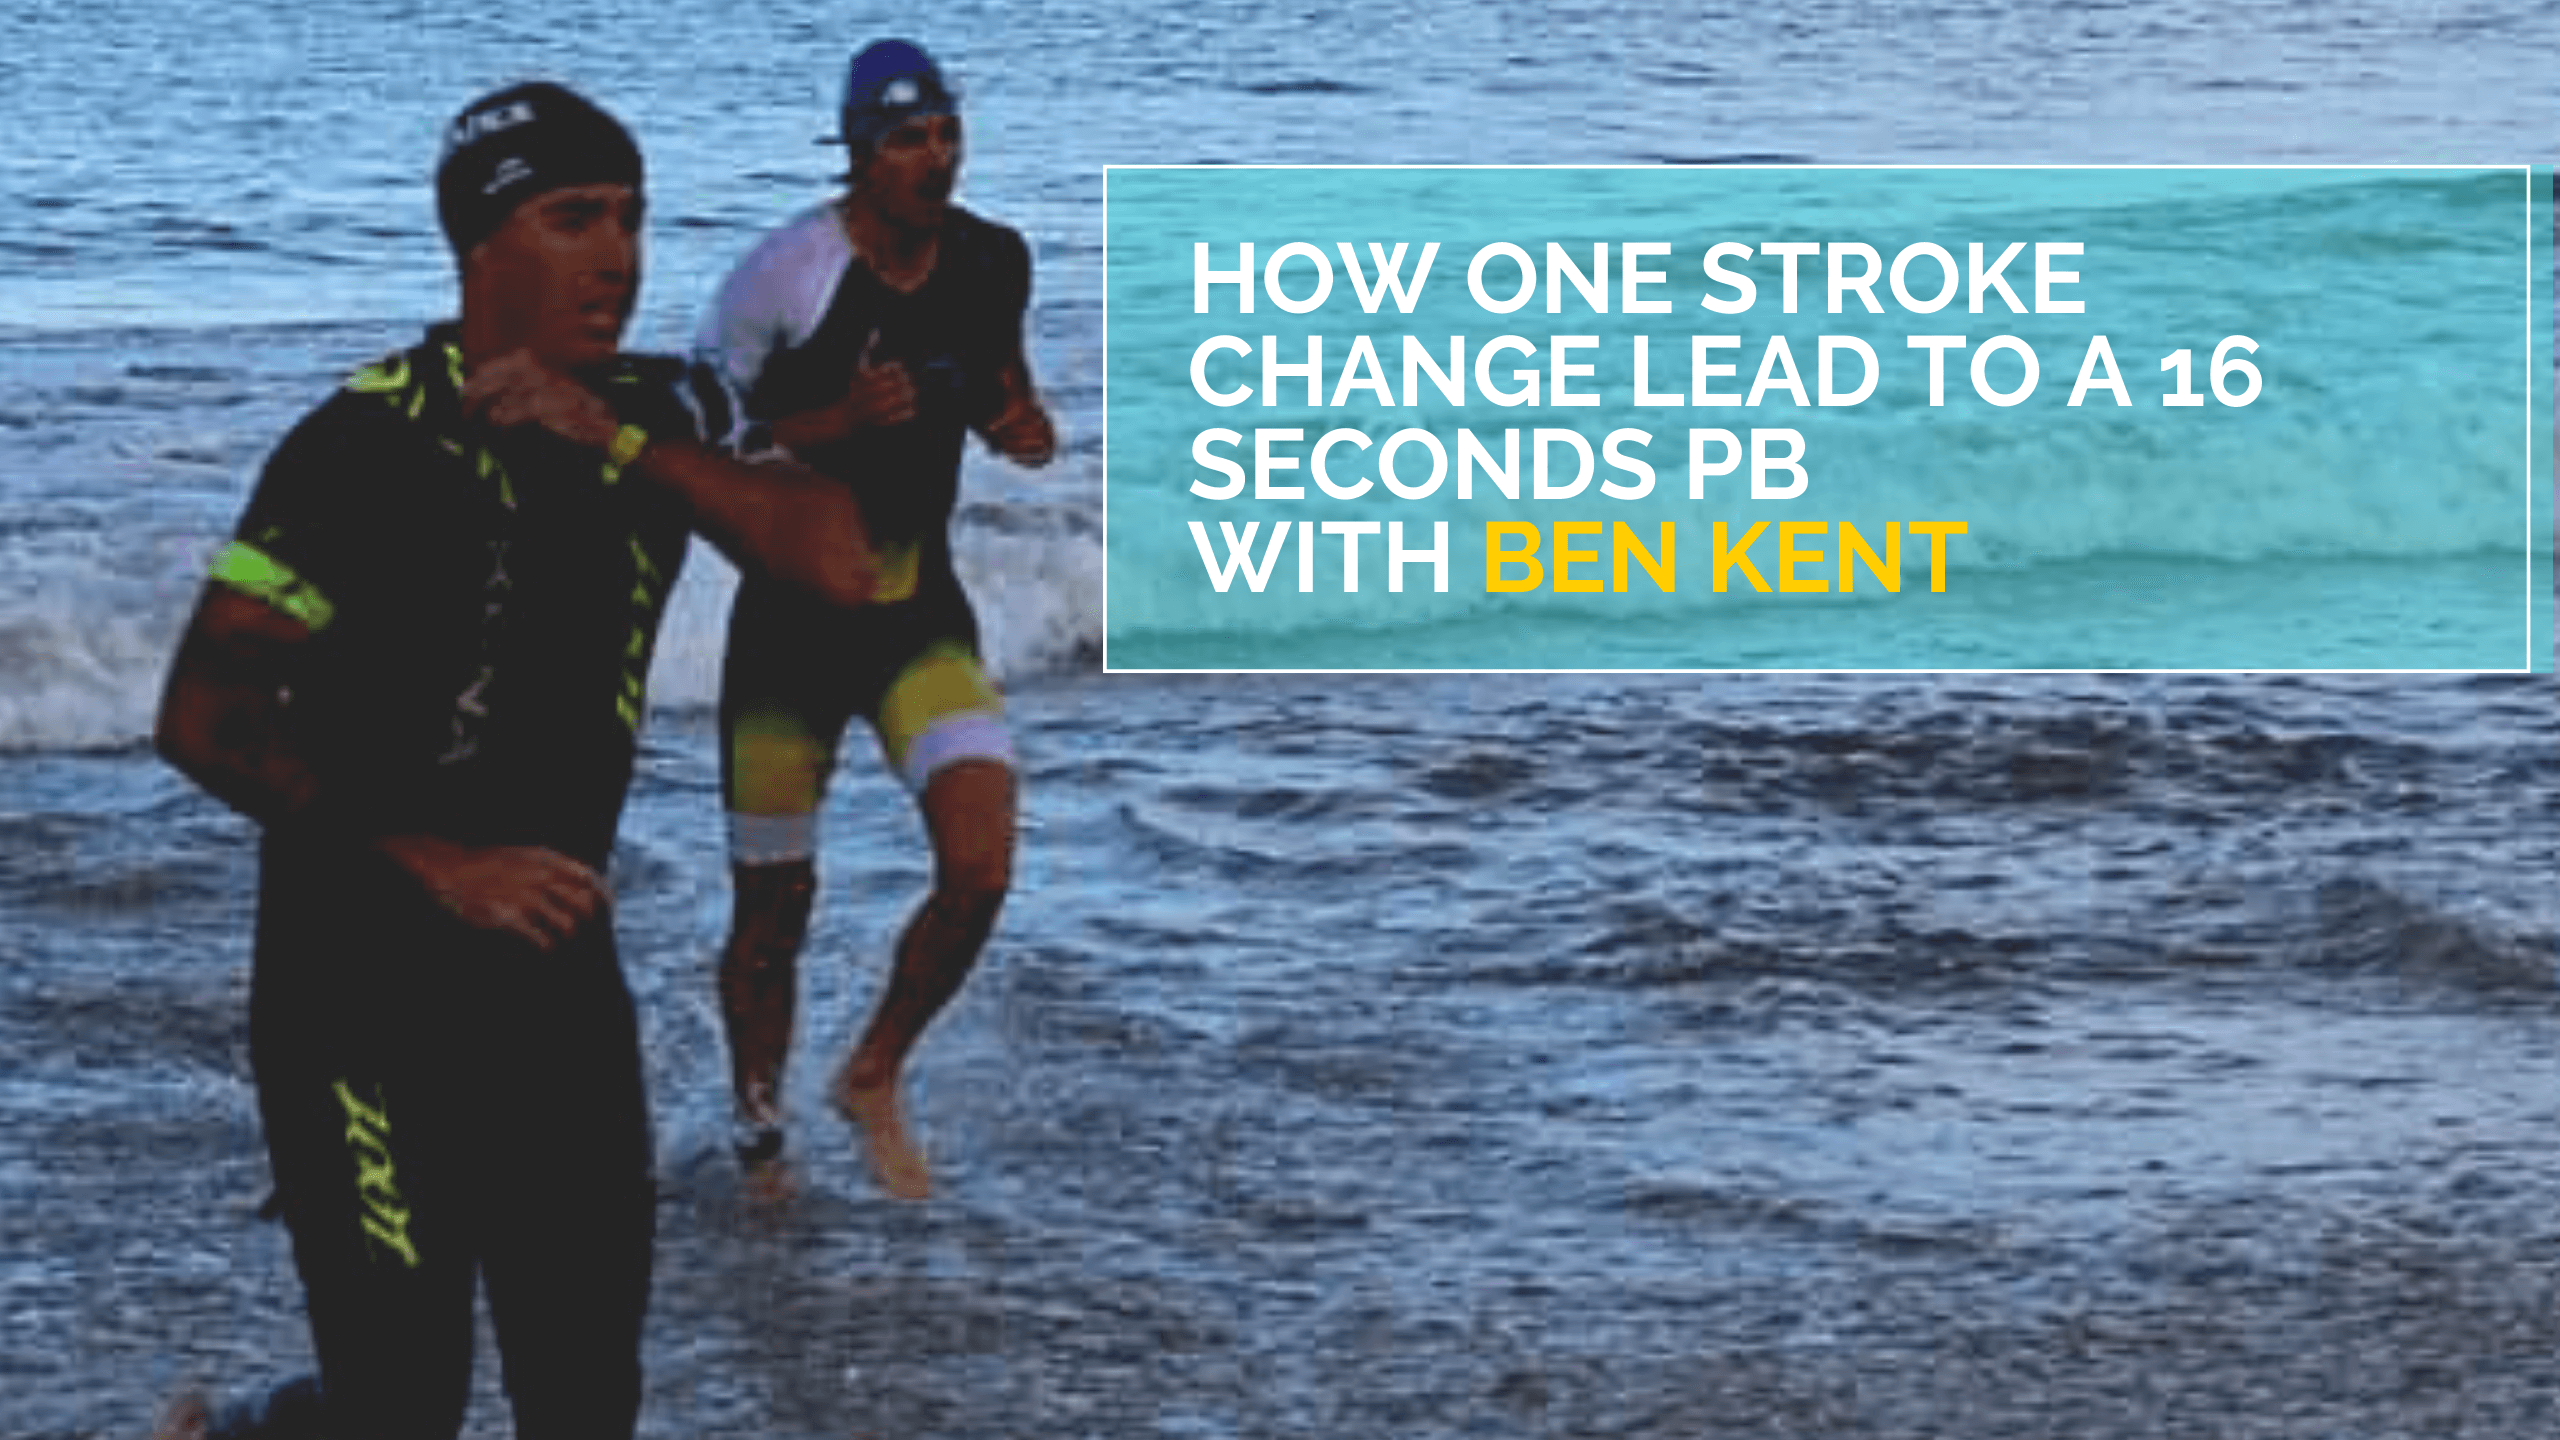 How One Stroke Change Lead To A 16 Seconds PB with Ben Kent